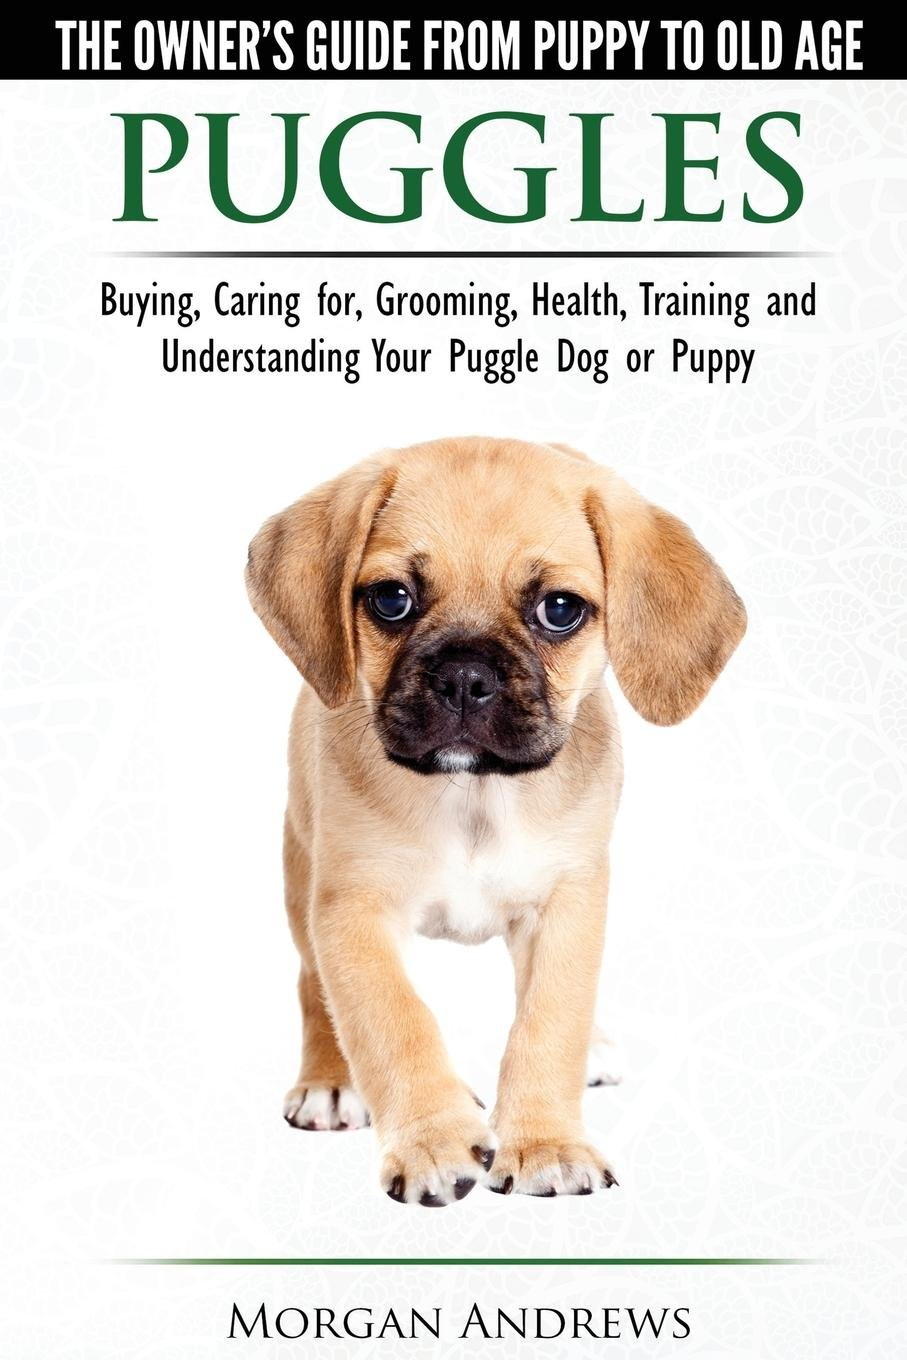 Puggles The Owner S Guide From Puppy To Old Age Choosing Caring